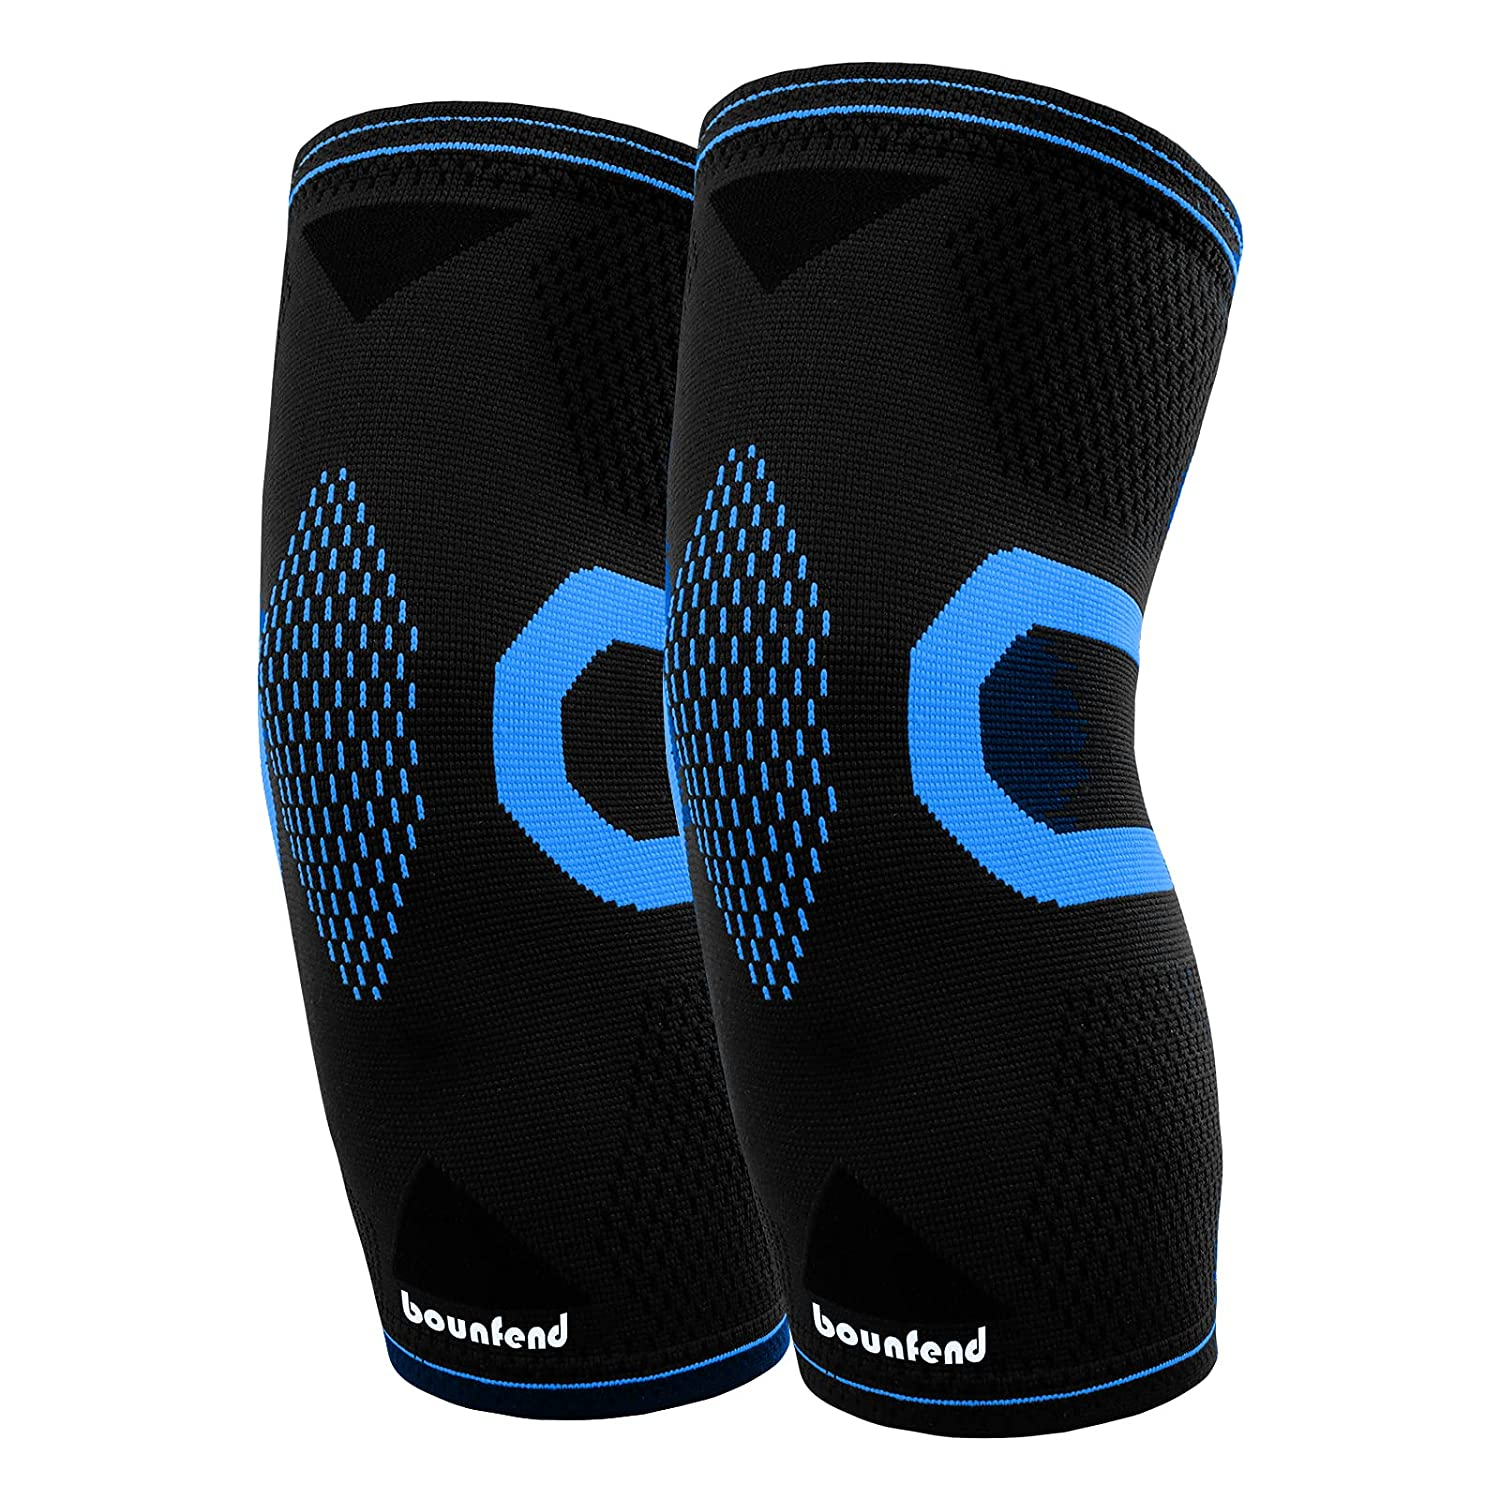 At the price of surprise Bounfend 2 Pack Popular standard Knee Compression Men Sleeve B for Women